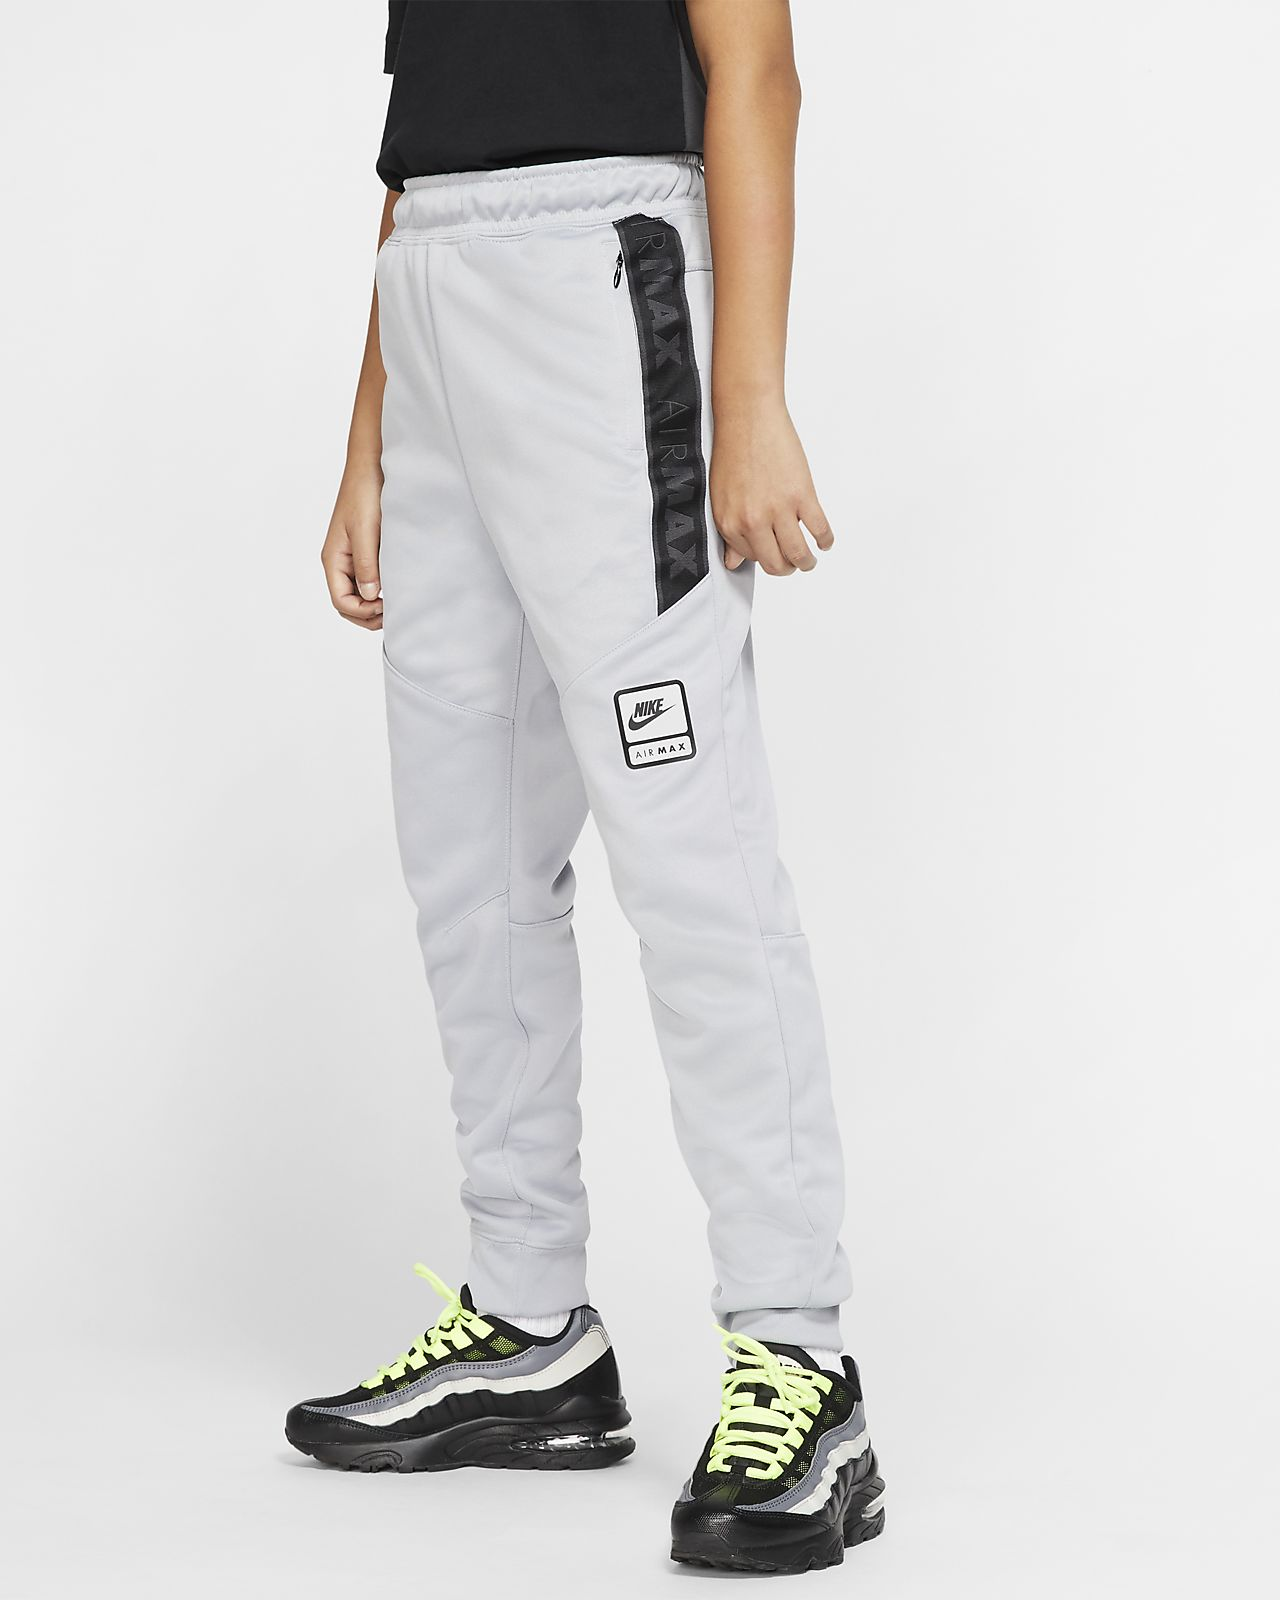 Nike Sportswear Air Max Older Kids' (Boys') Trousers